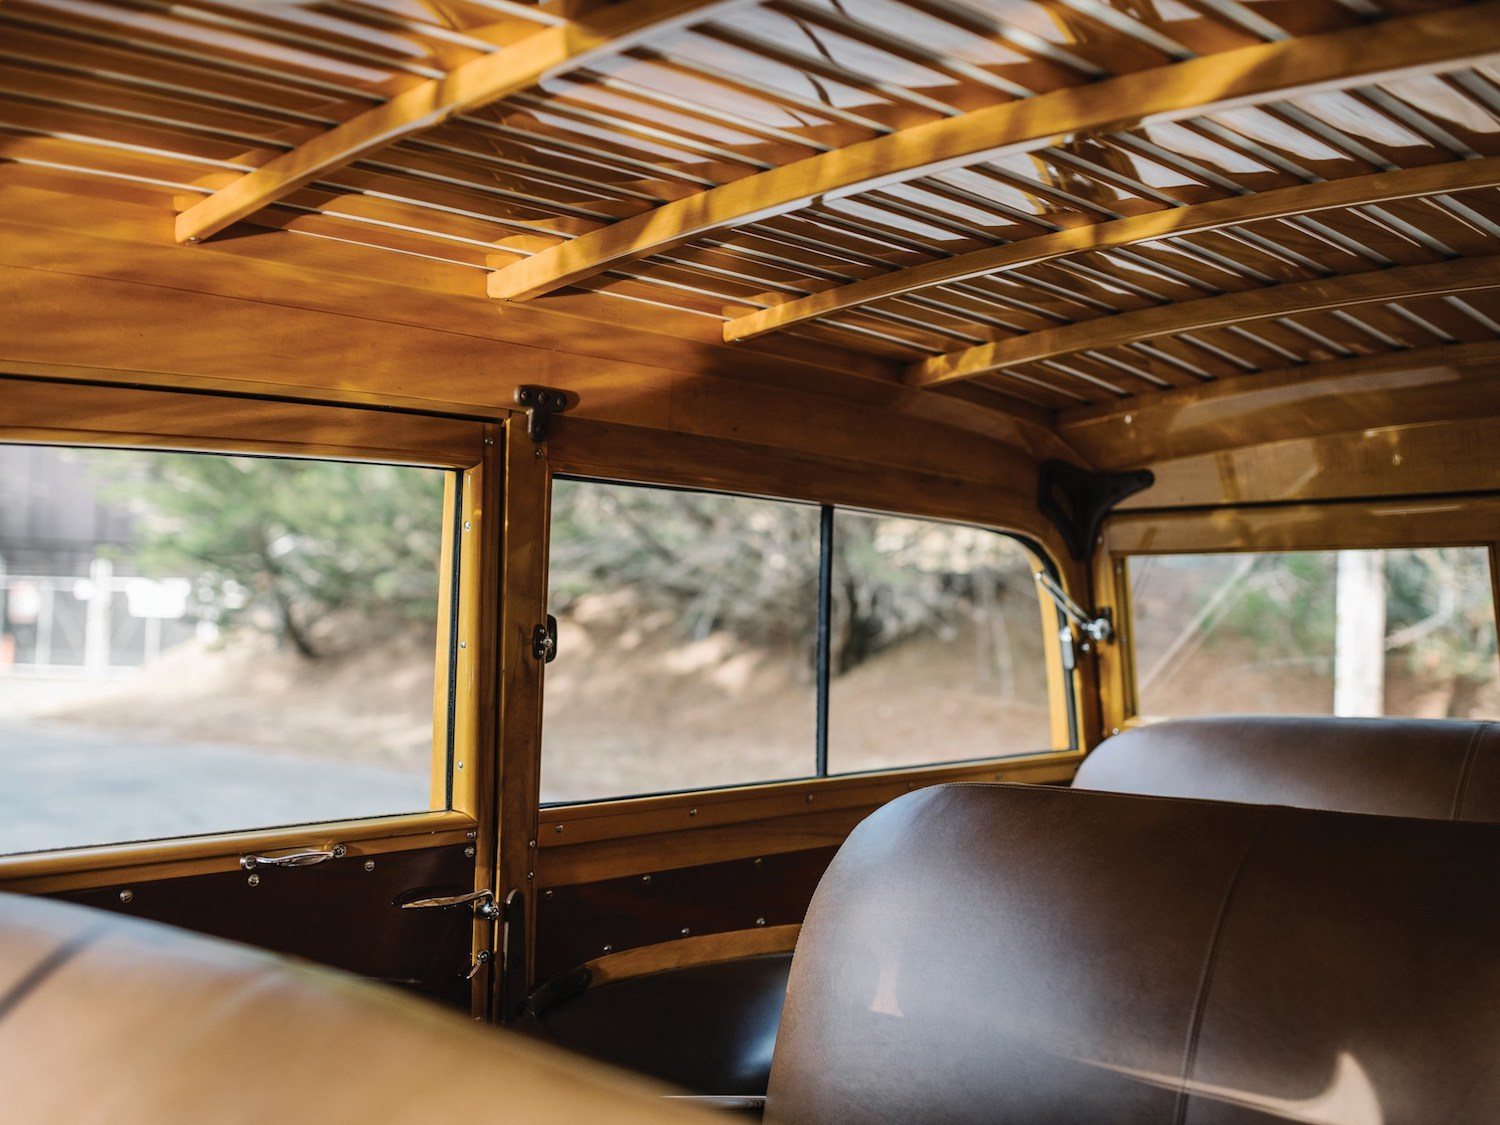 interior wood and leather seats